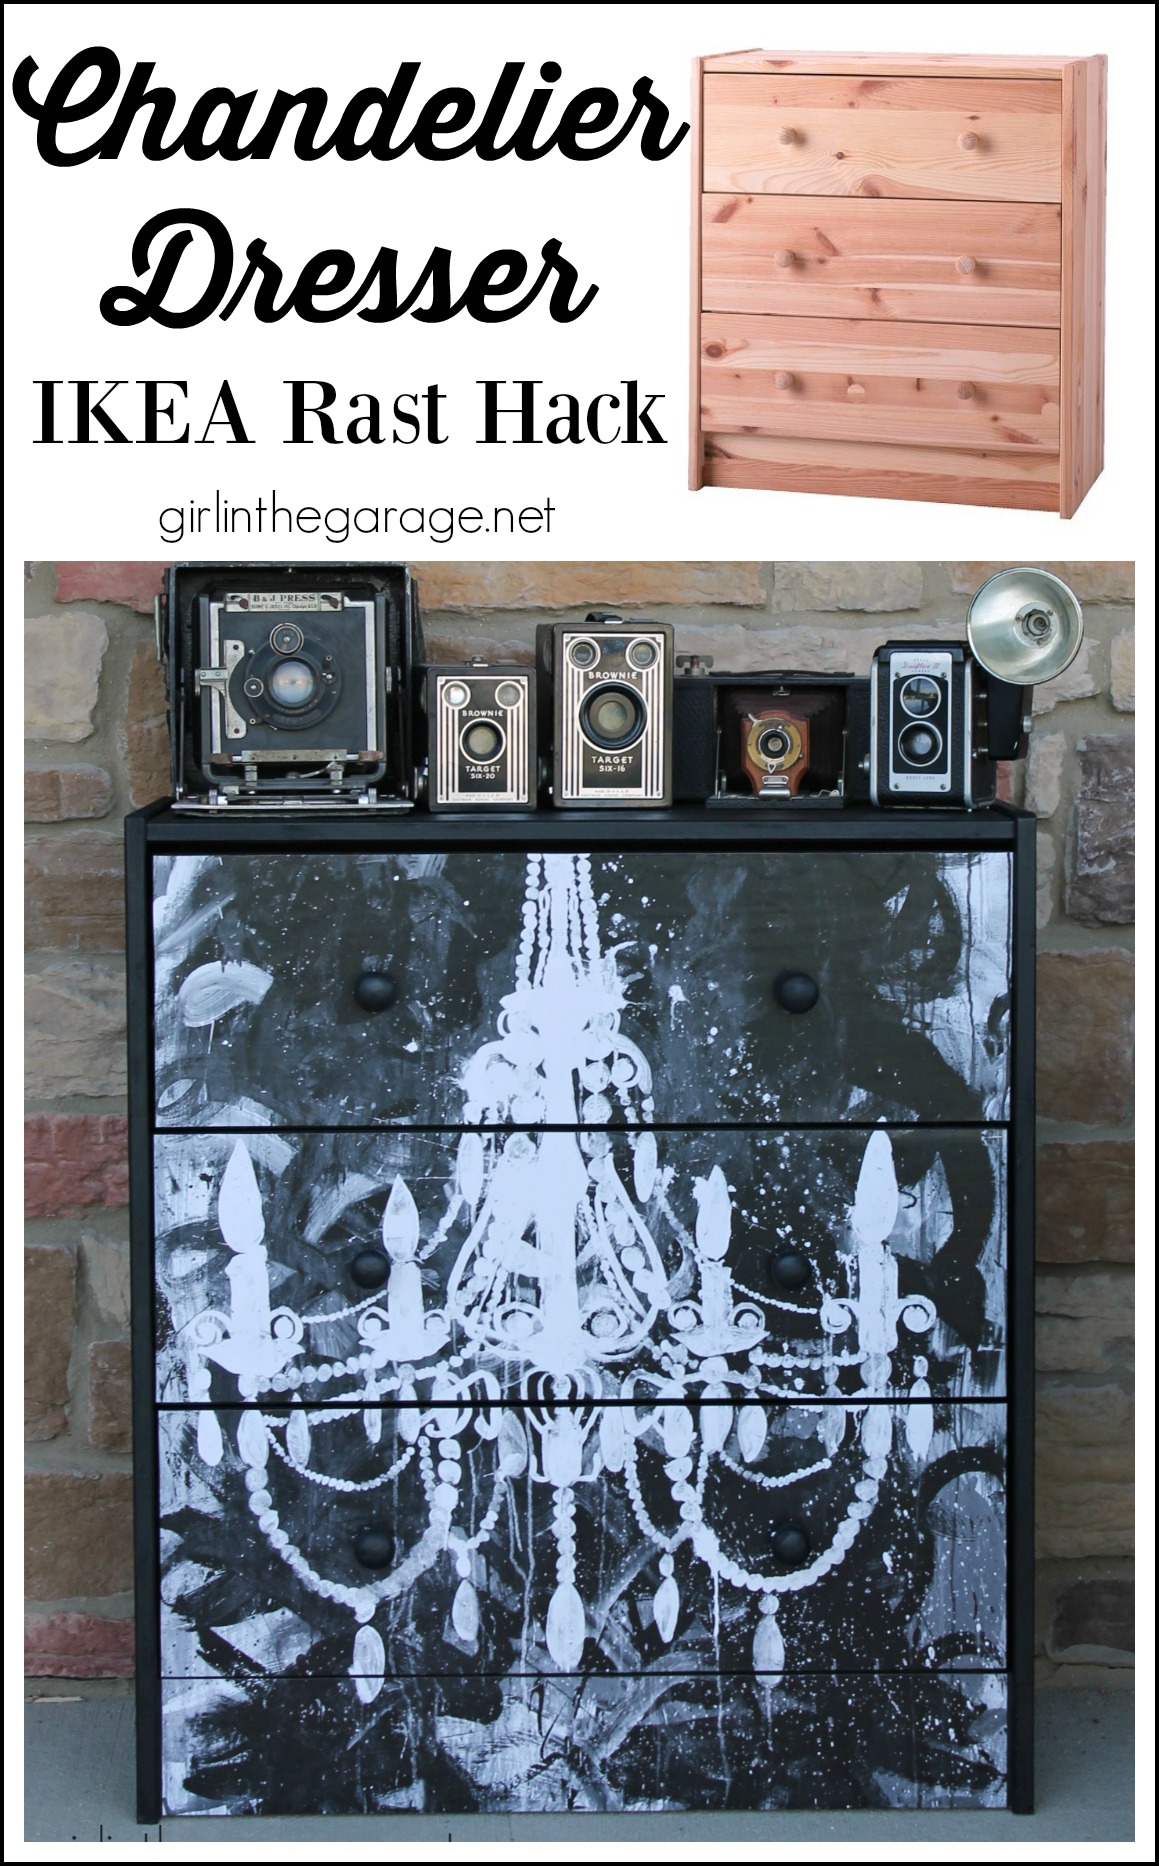 Chandelier Dresser - IKEA Rast Hack by Girl in the Garage